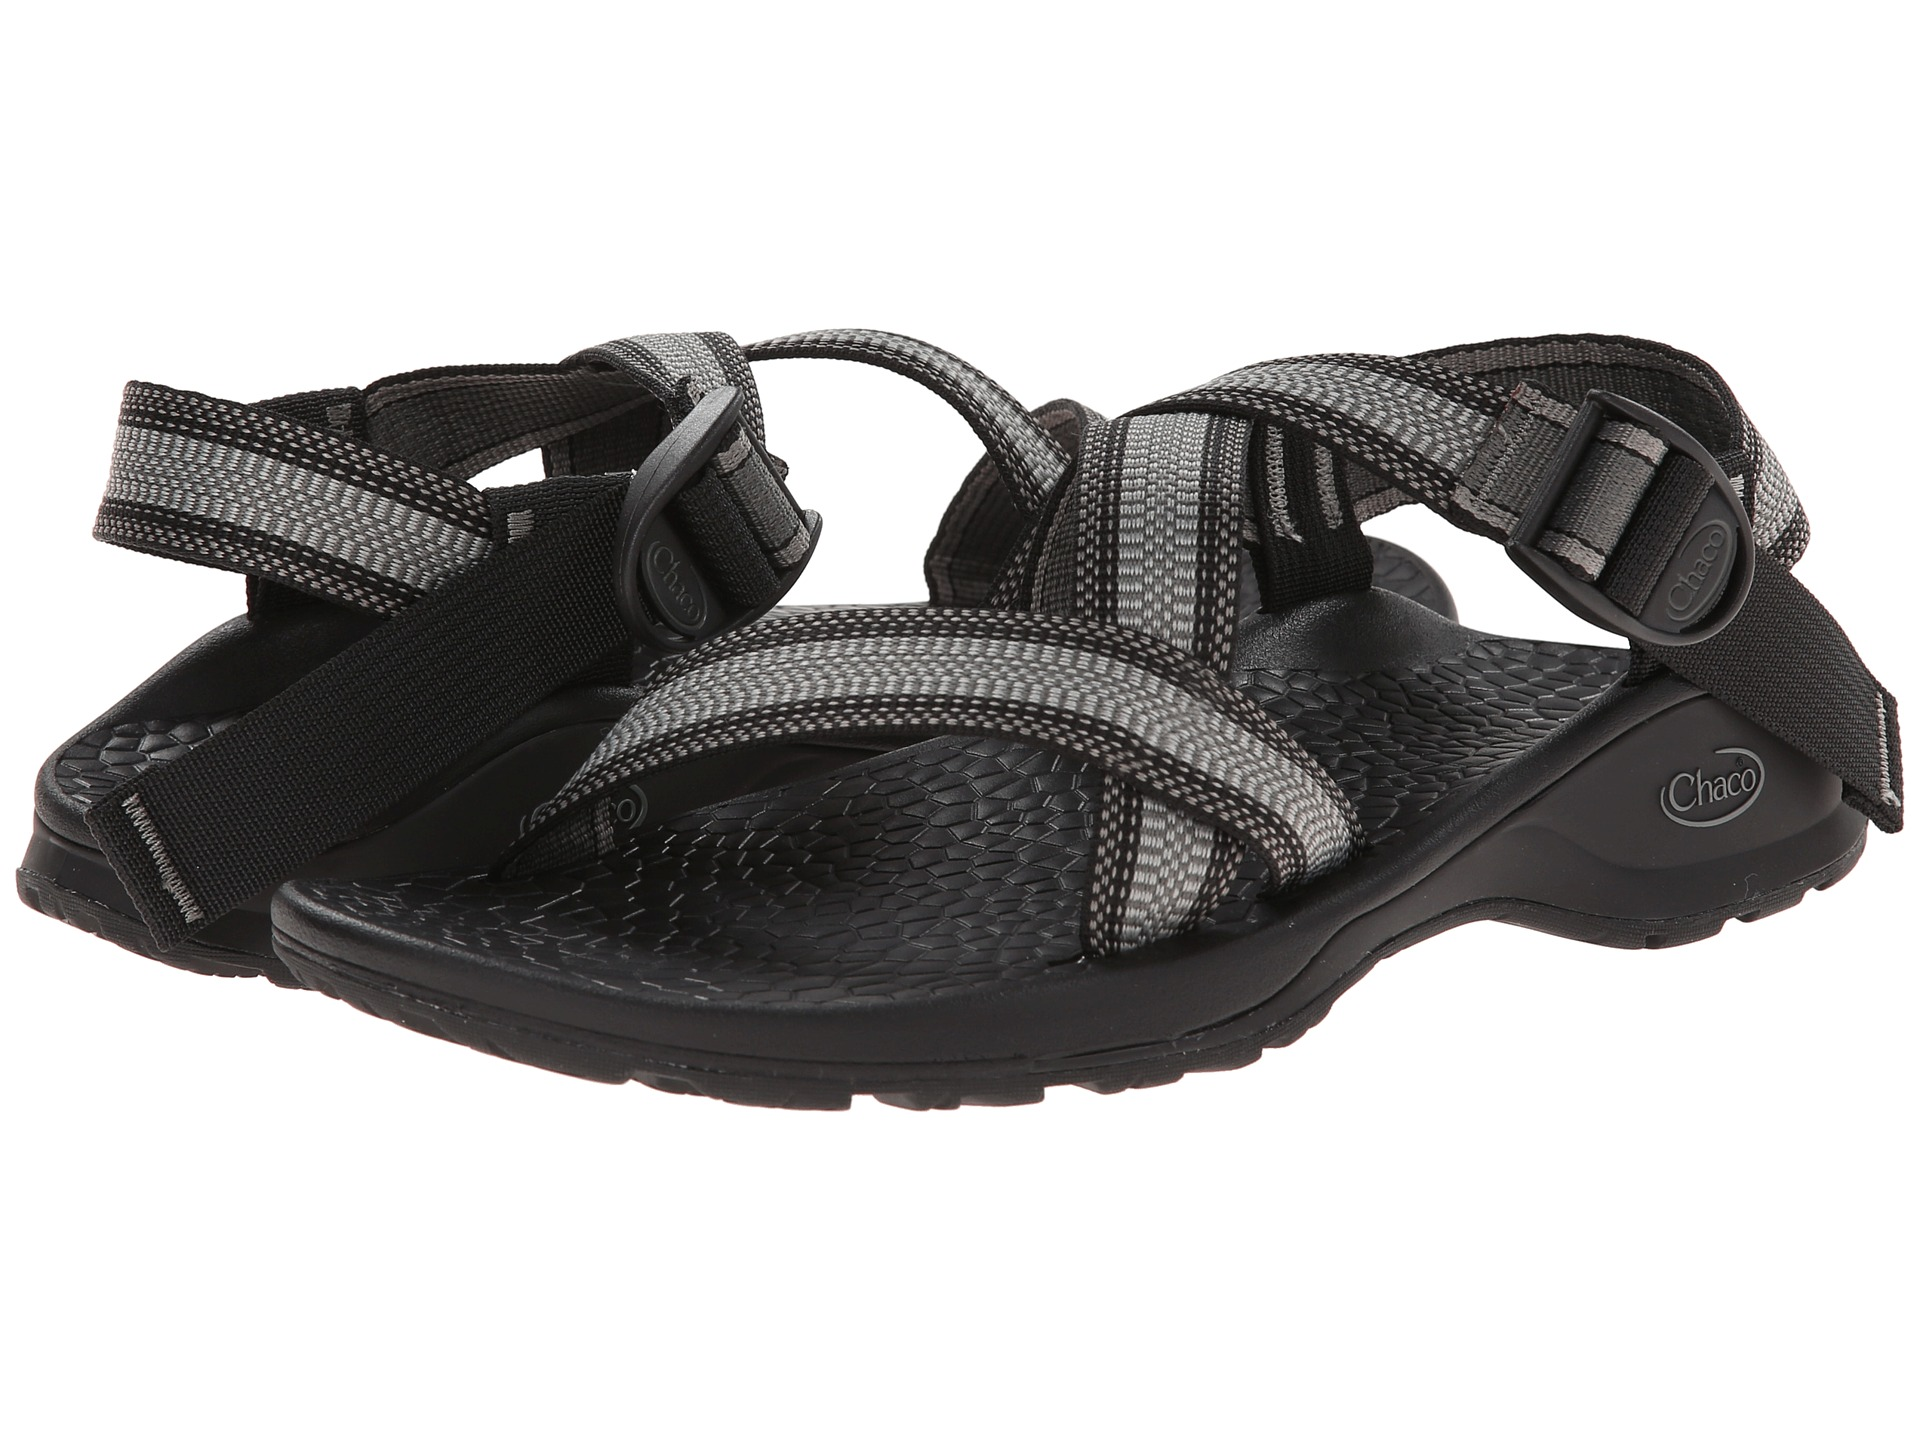 301 Moved Permanently: Chaco Sandals Iron